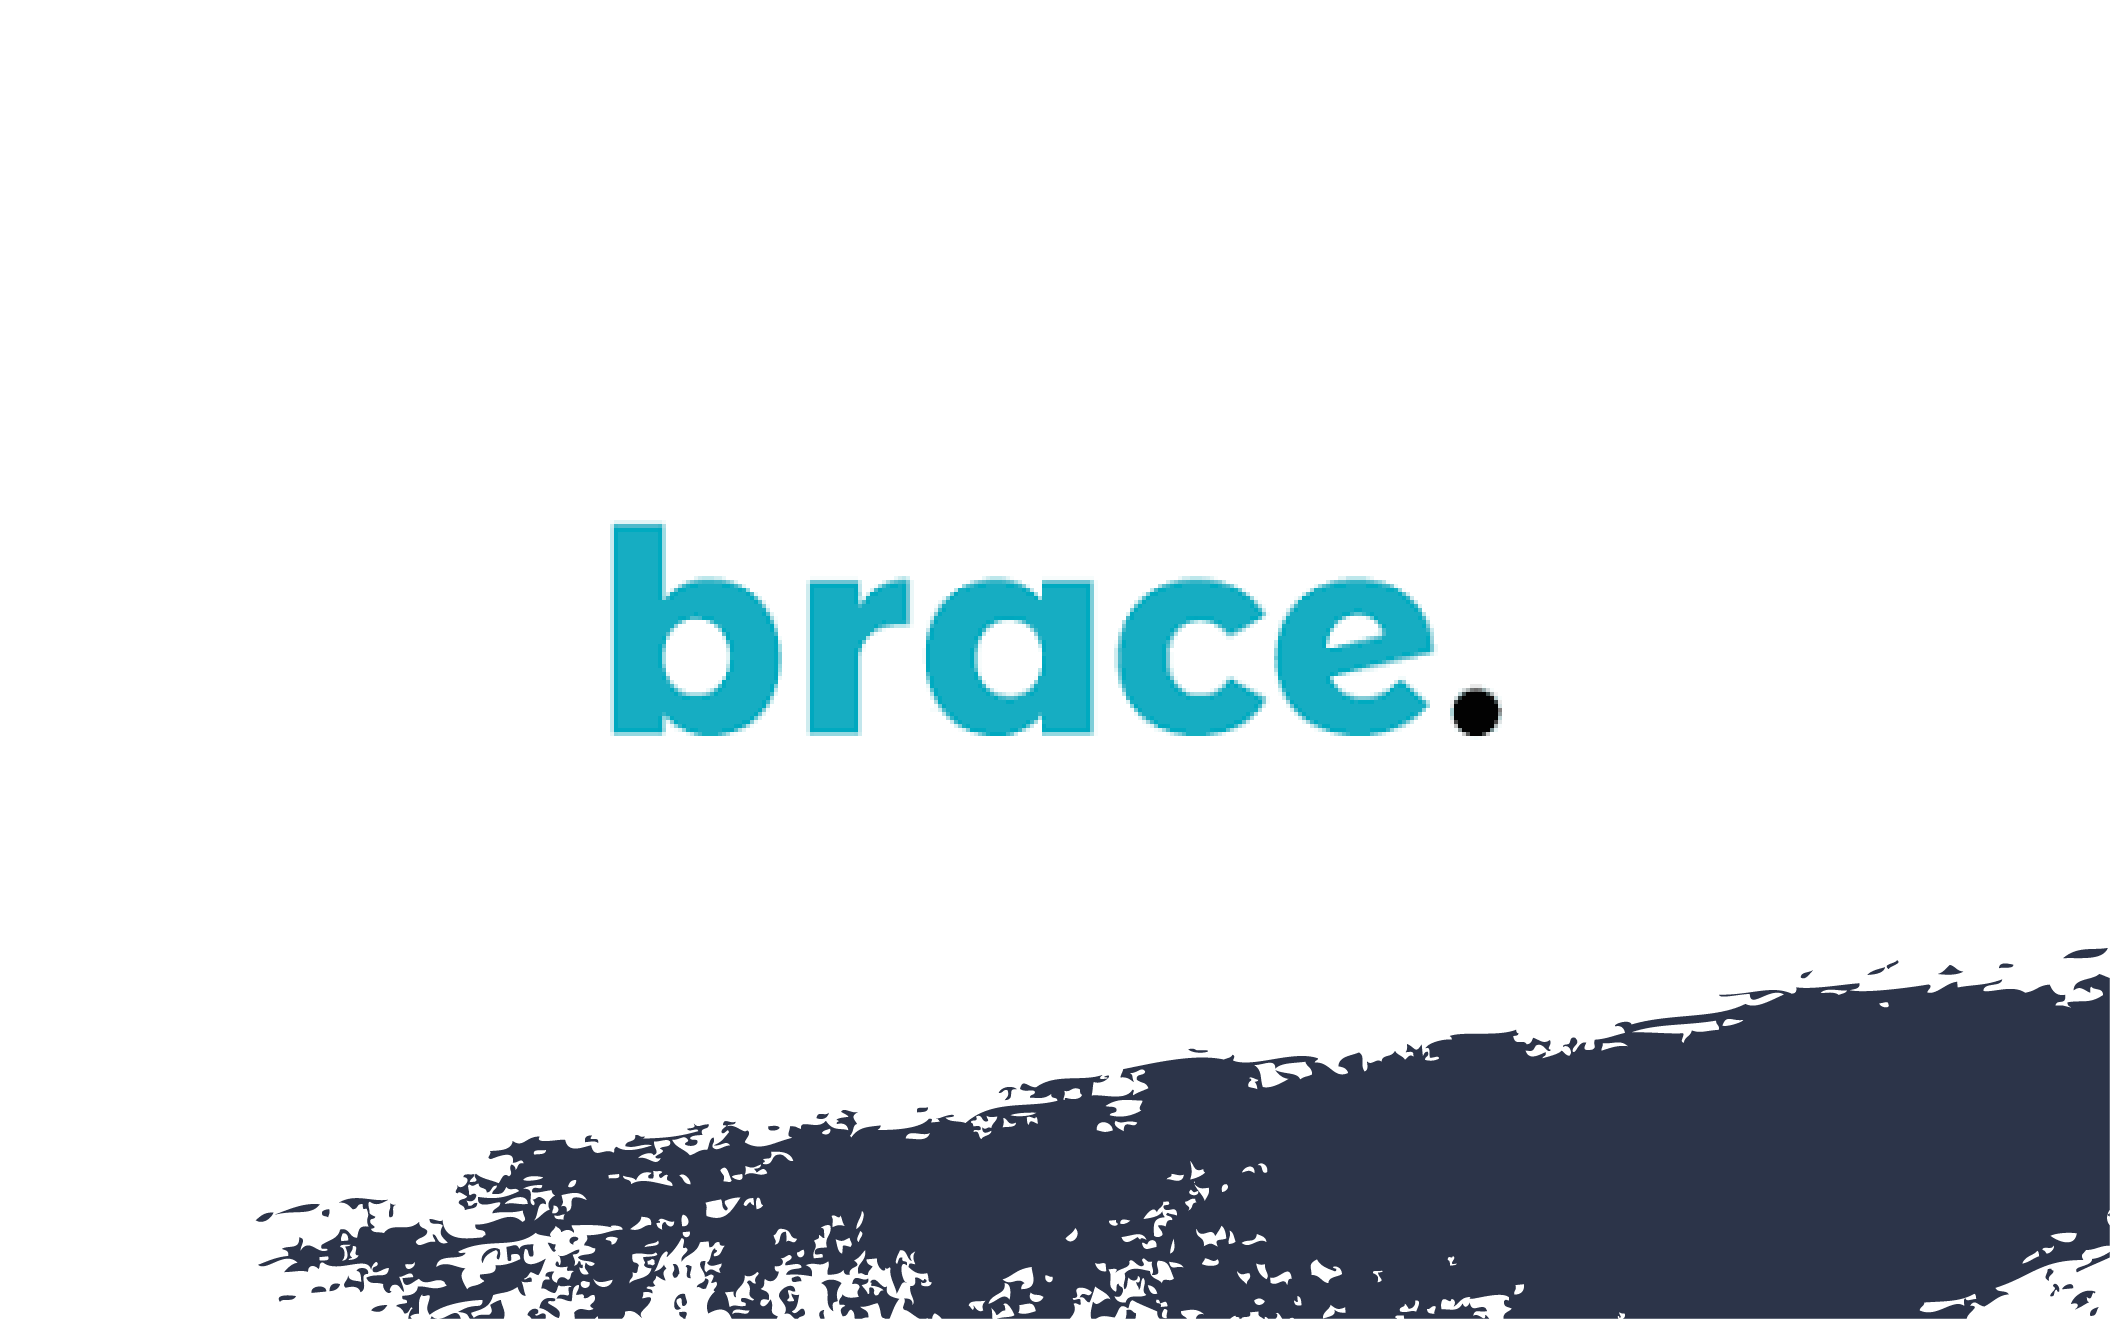 Our investment in Brace